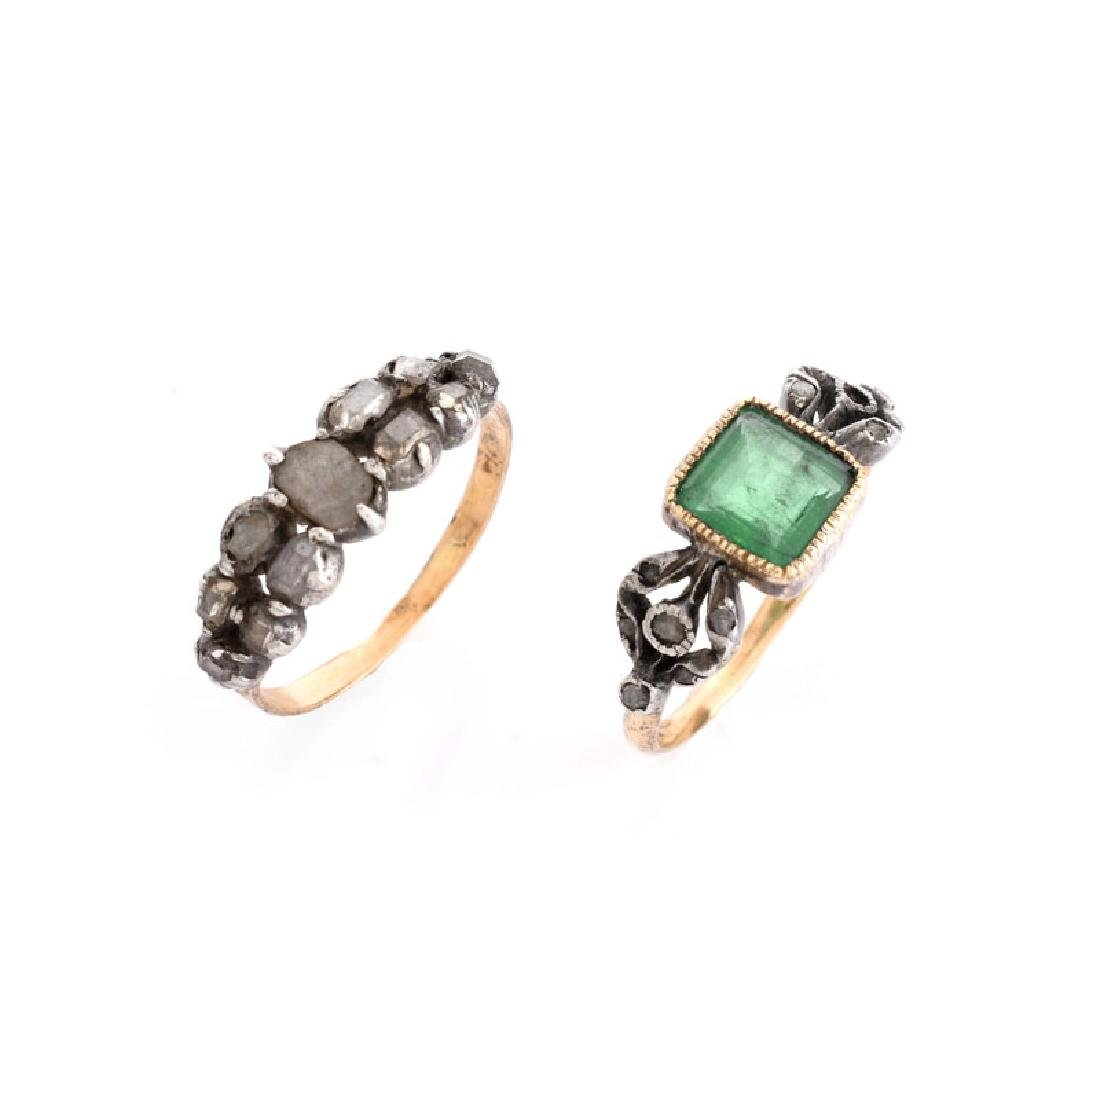 Two (2) Antique Rings Including an Emerald and 14 Karat